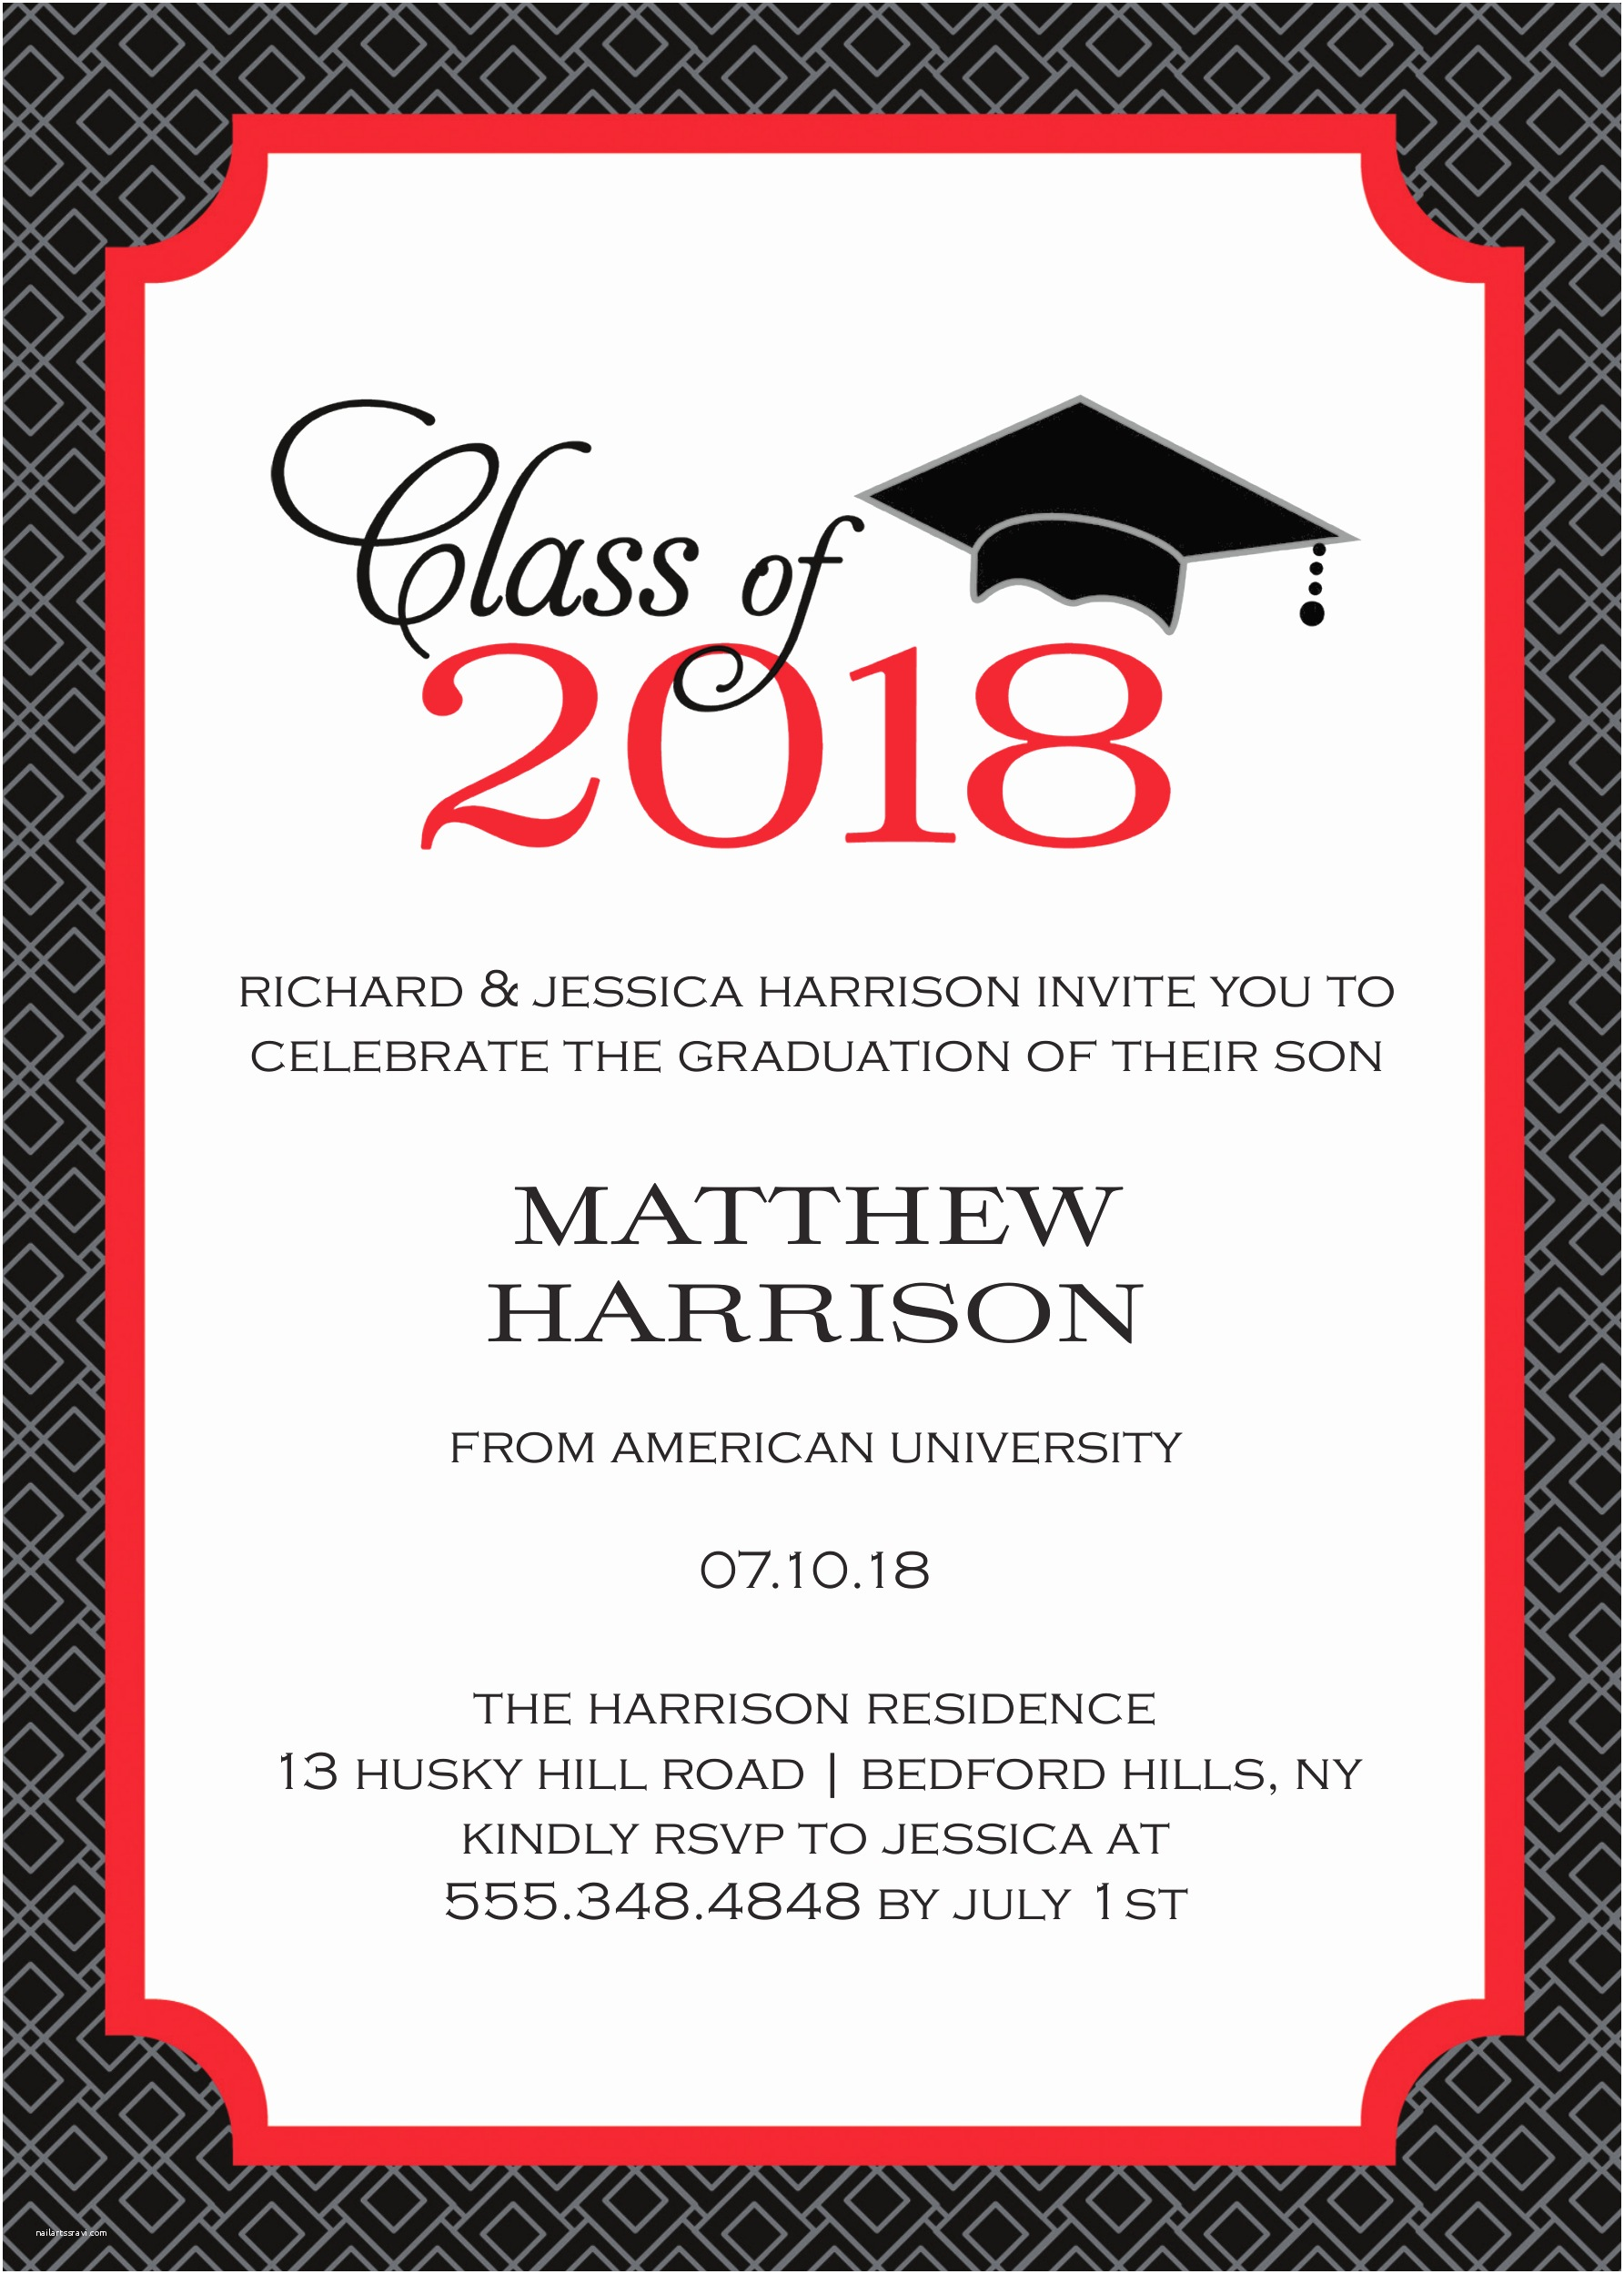 Sample Graduation Party Invitation Graduation Party Invitations High School or College